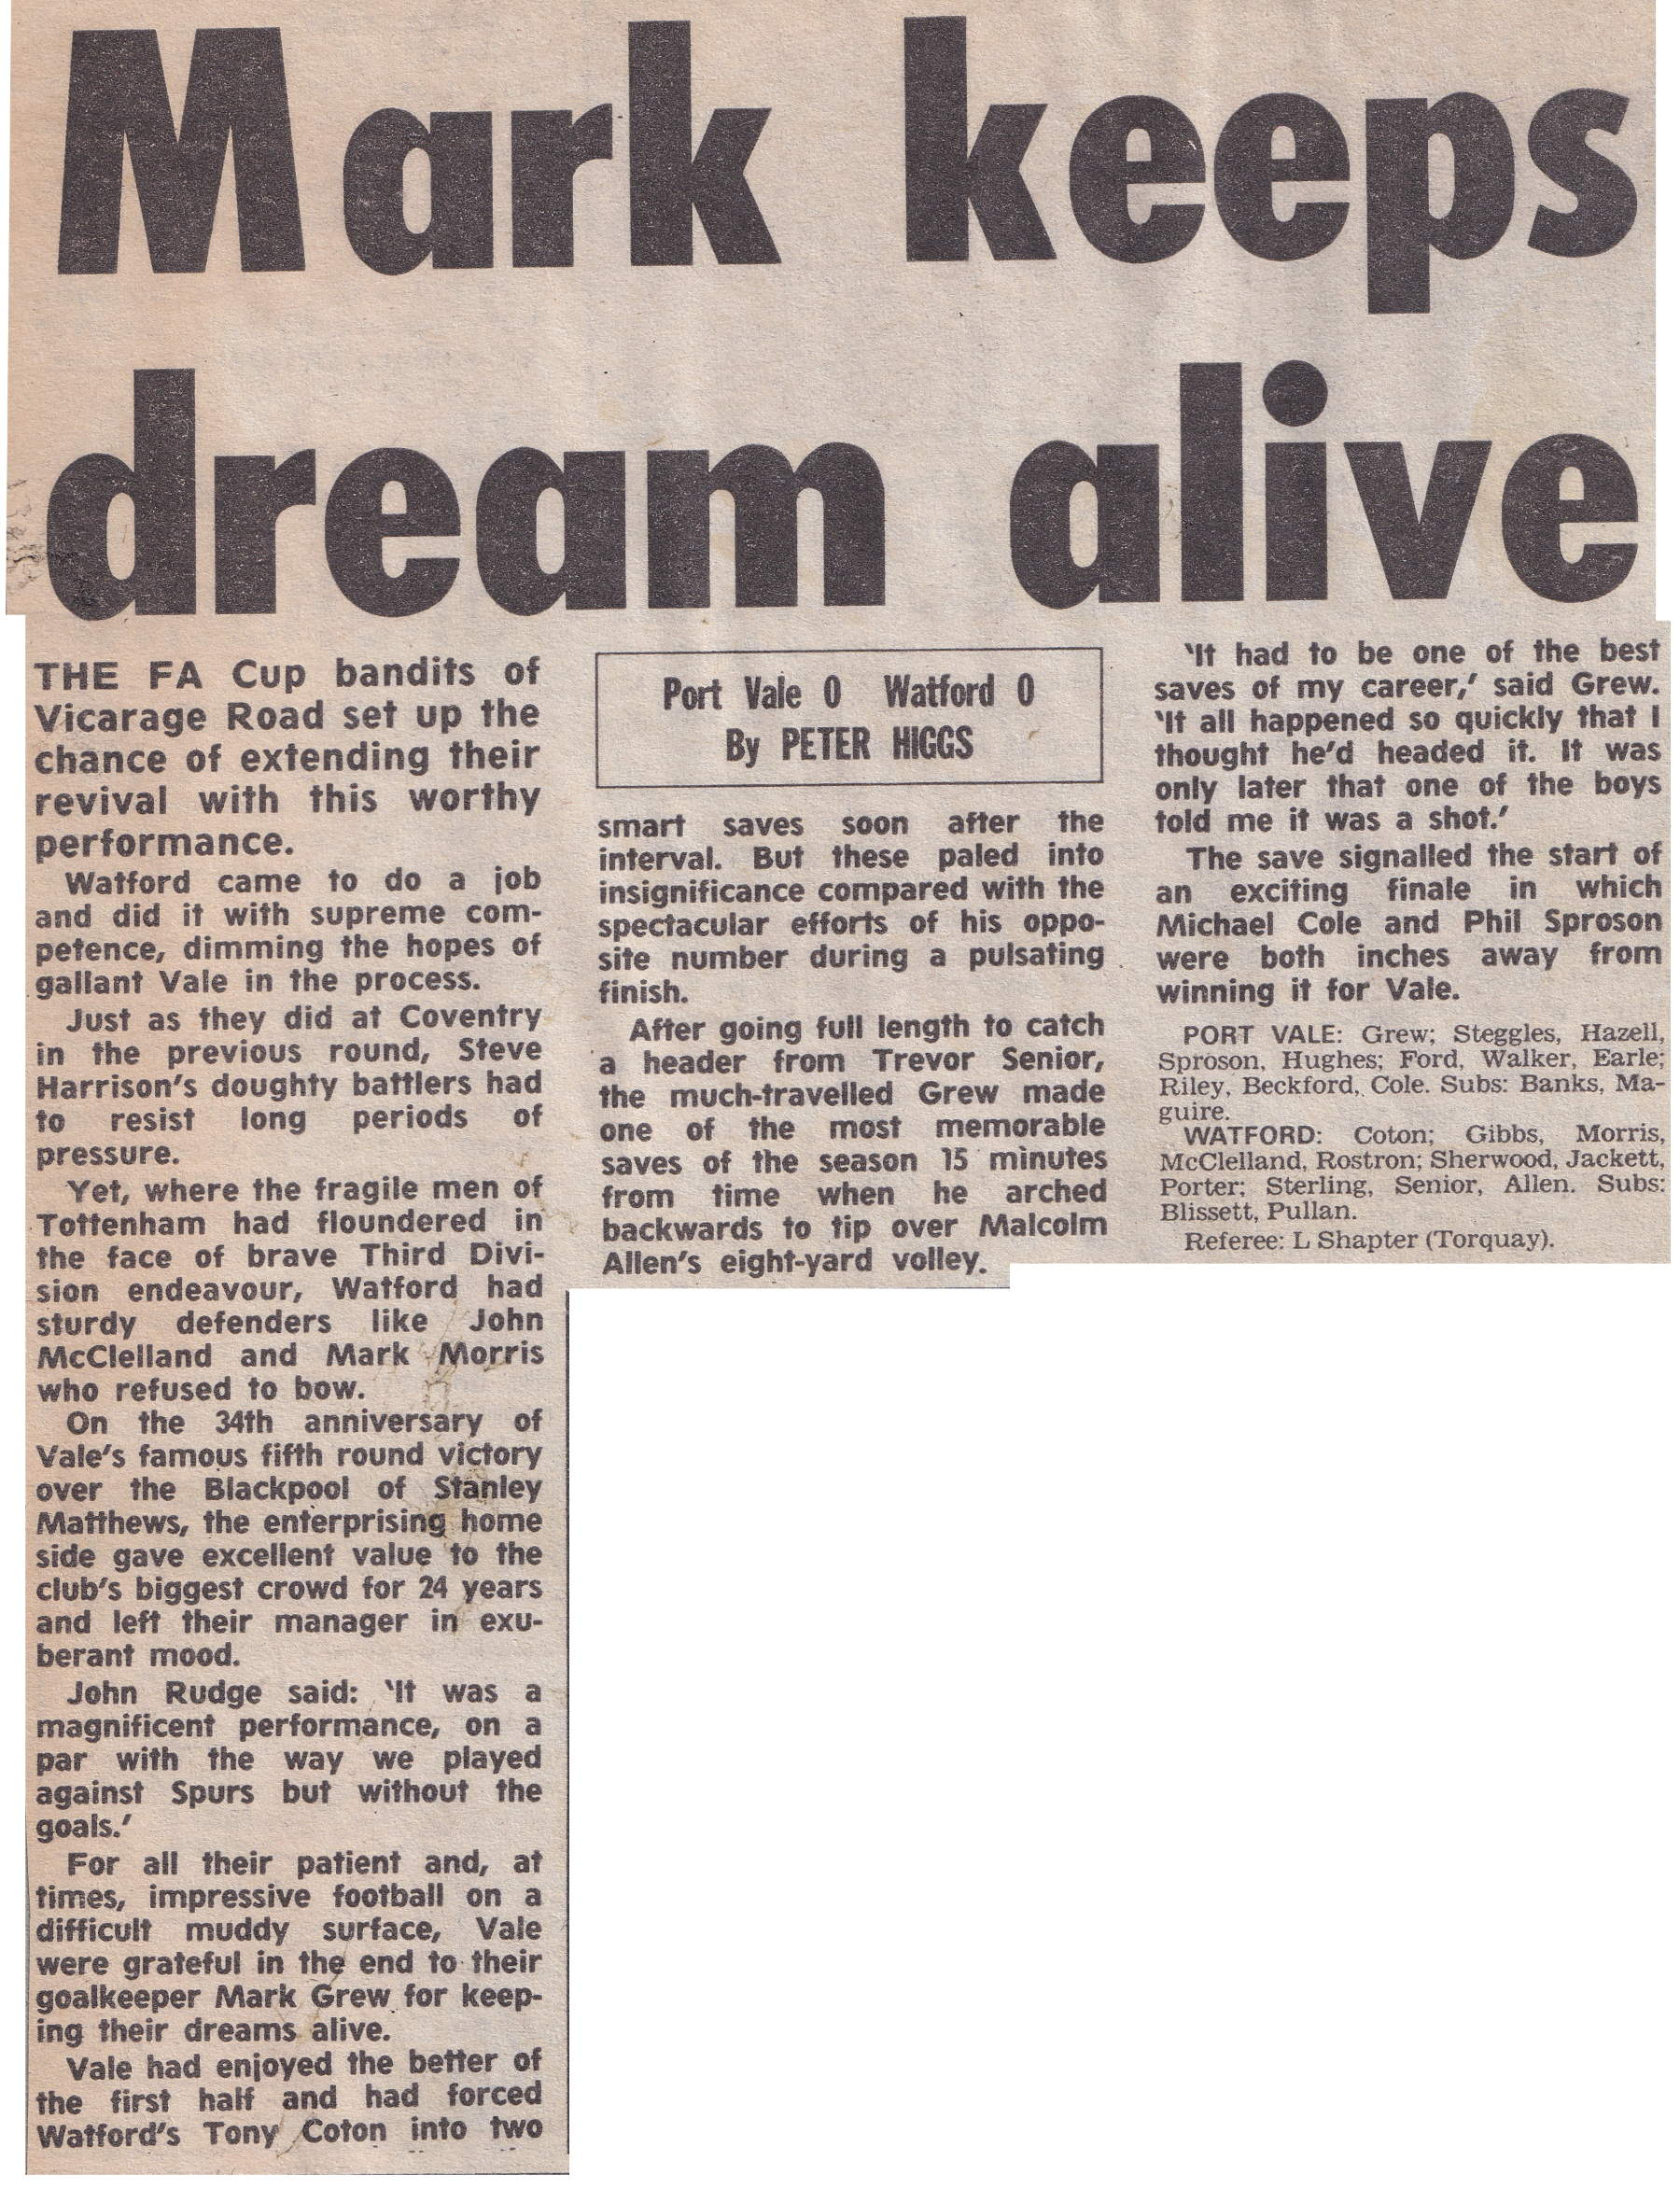 Port Vale 0-0 Watford, FA Cup 1988, match report